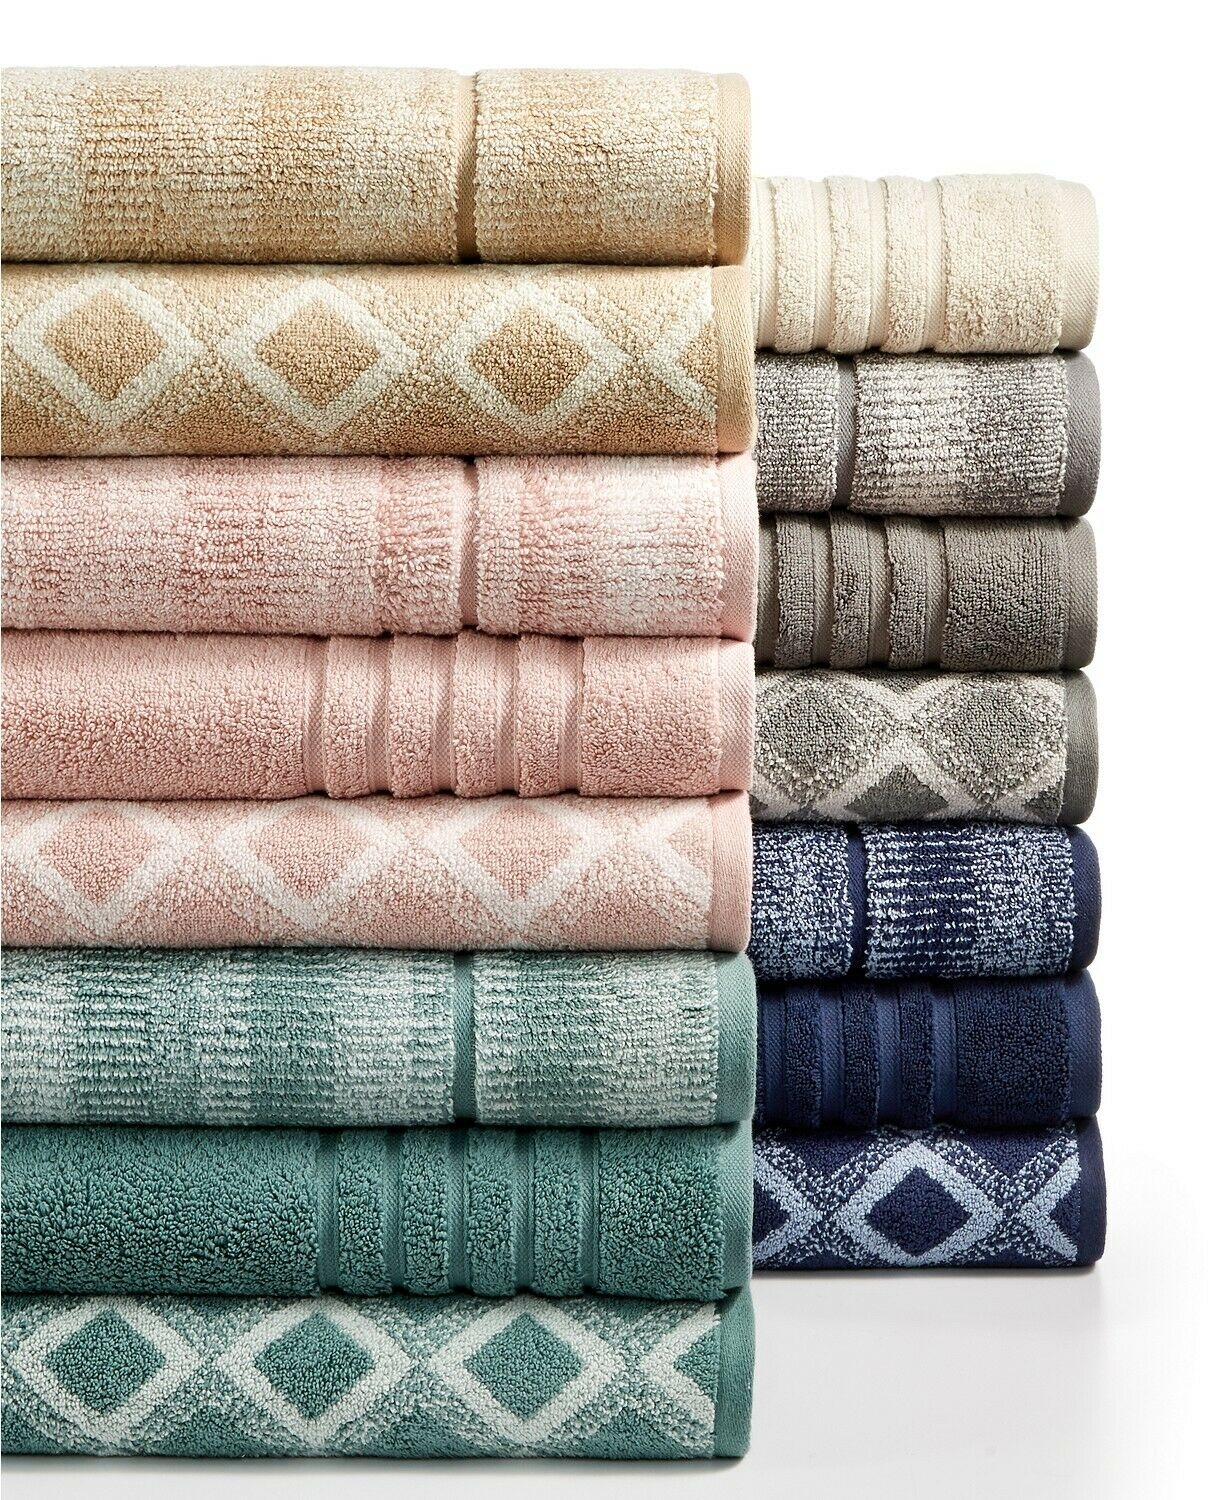 Hotel Collection 3 Piece Towel Set Ultimate MicroCotton Abso